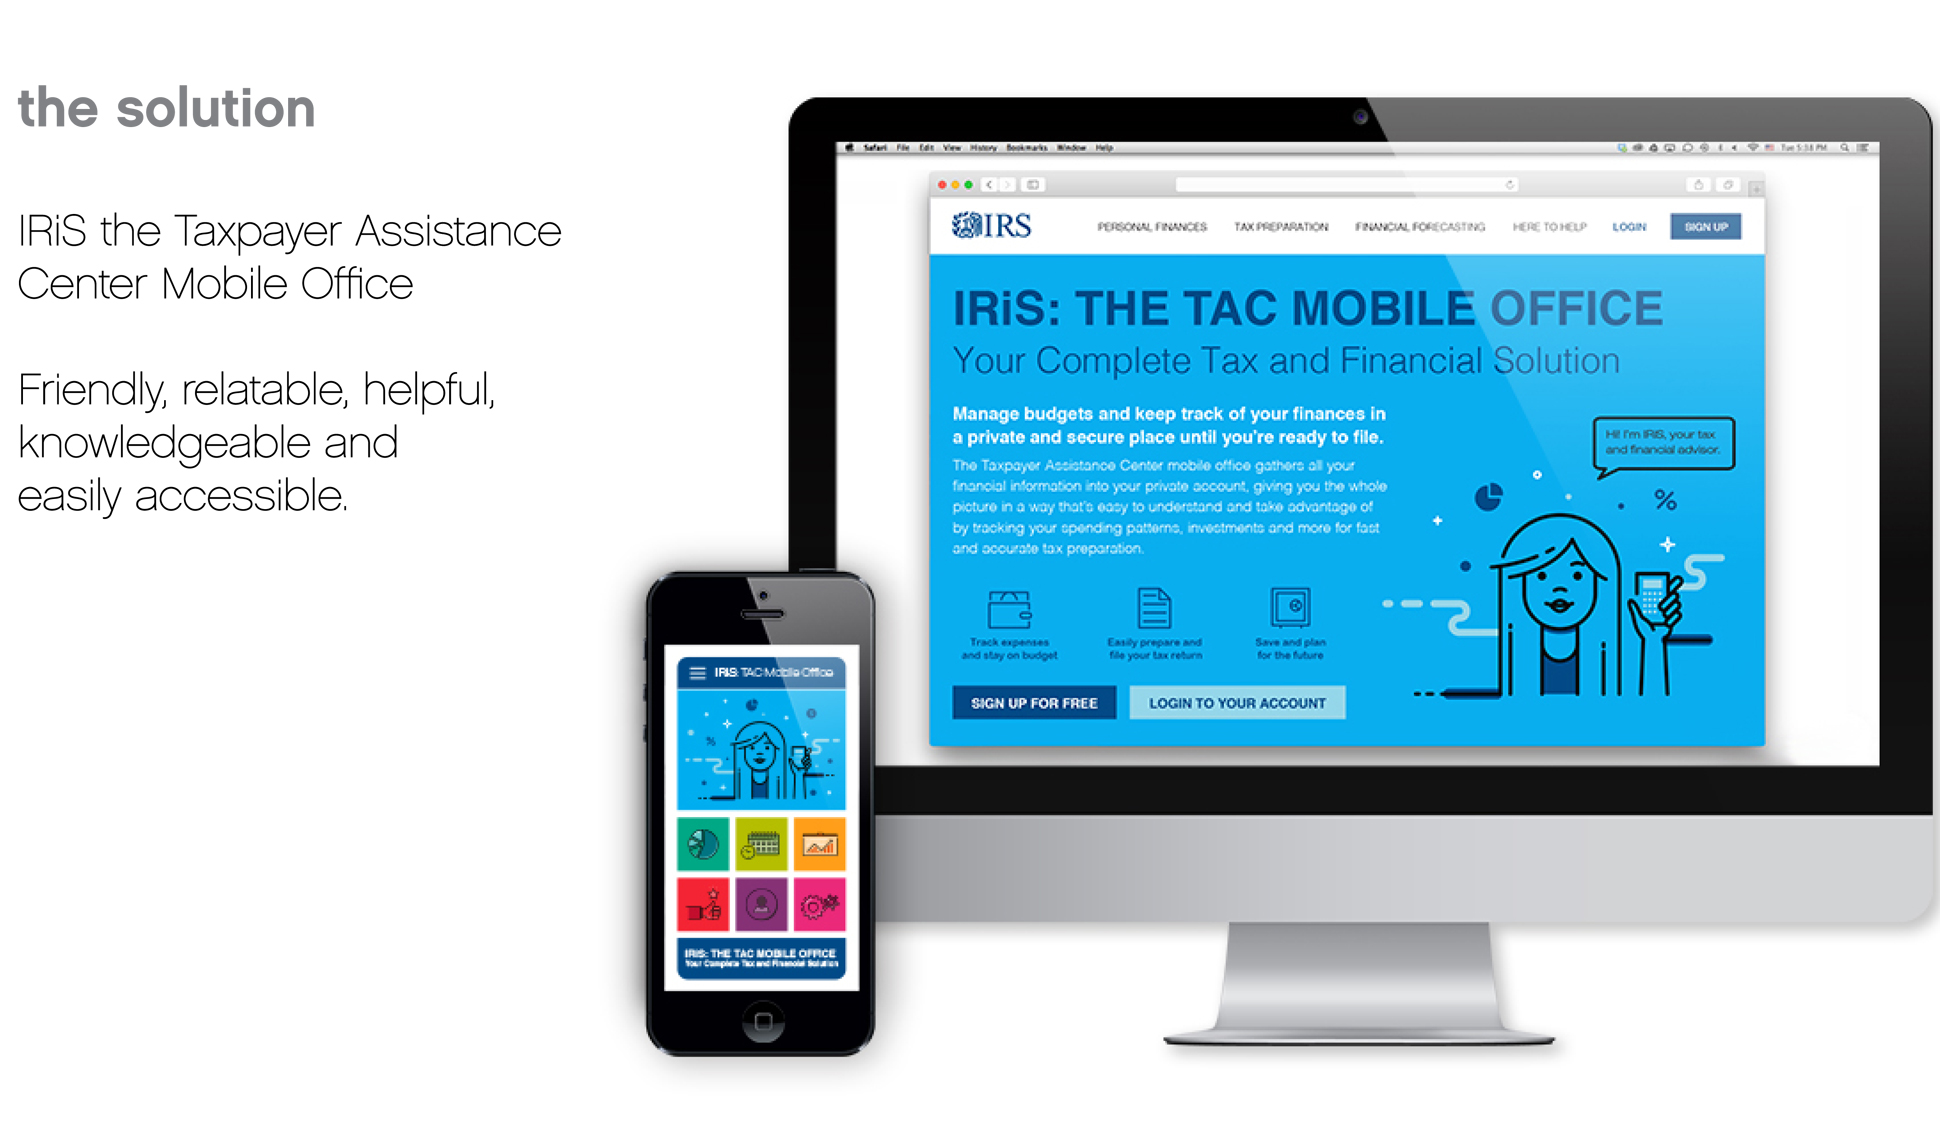 A page from a tax design challenge submission. This page introduces IRiS, the taxpayer assistance center mobile office. A desktop and mobile view are shown.